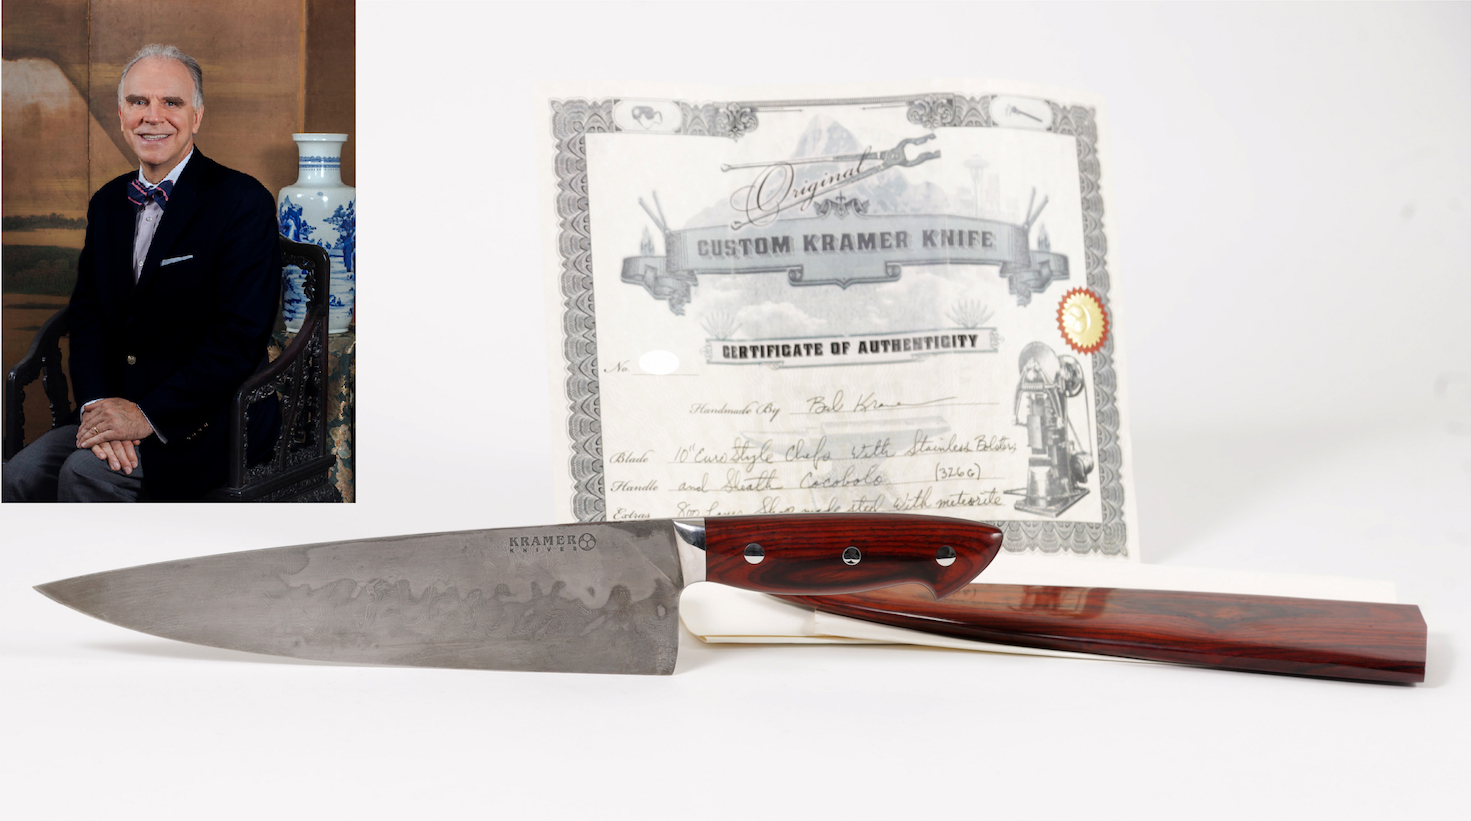 A photo of Anthony Bourdain's meteroite knife and its certificate of authenticity with an inset of Lark Mason sitting in an antique chair with an Asian vase behind him and other antique items in the background.